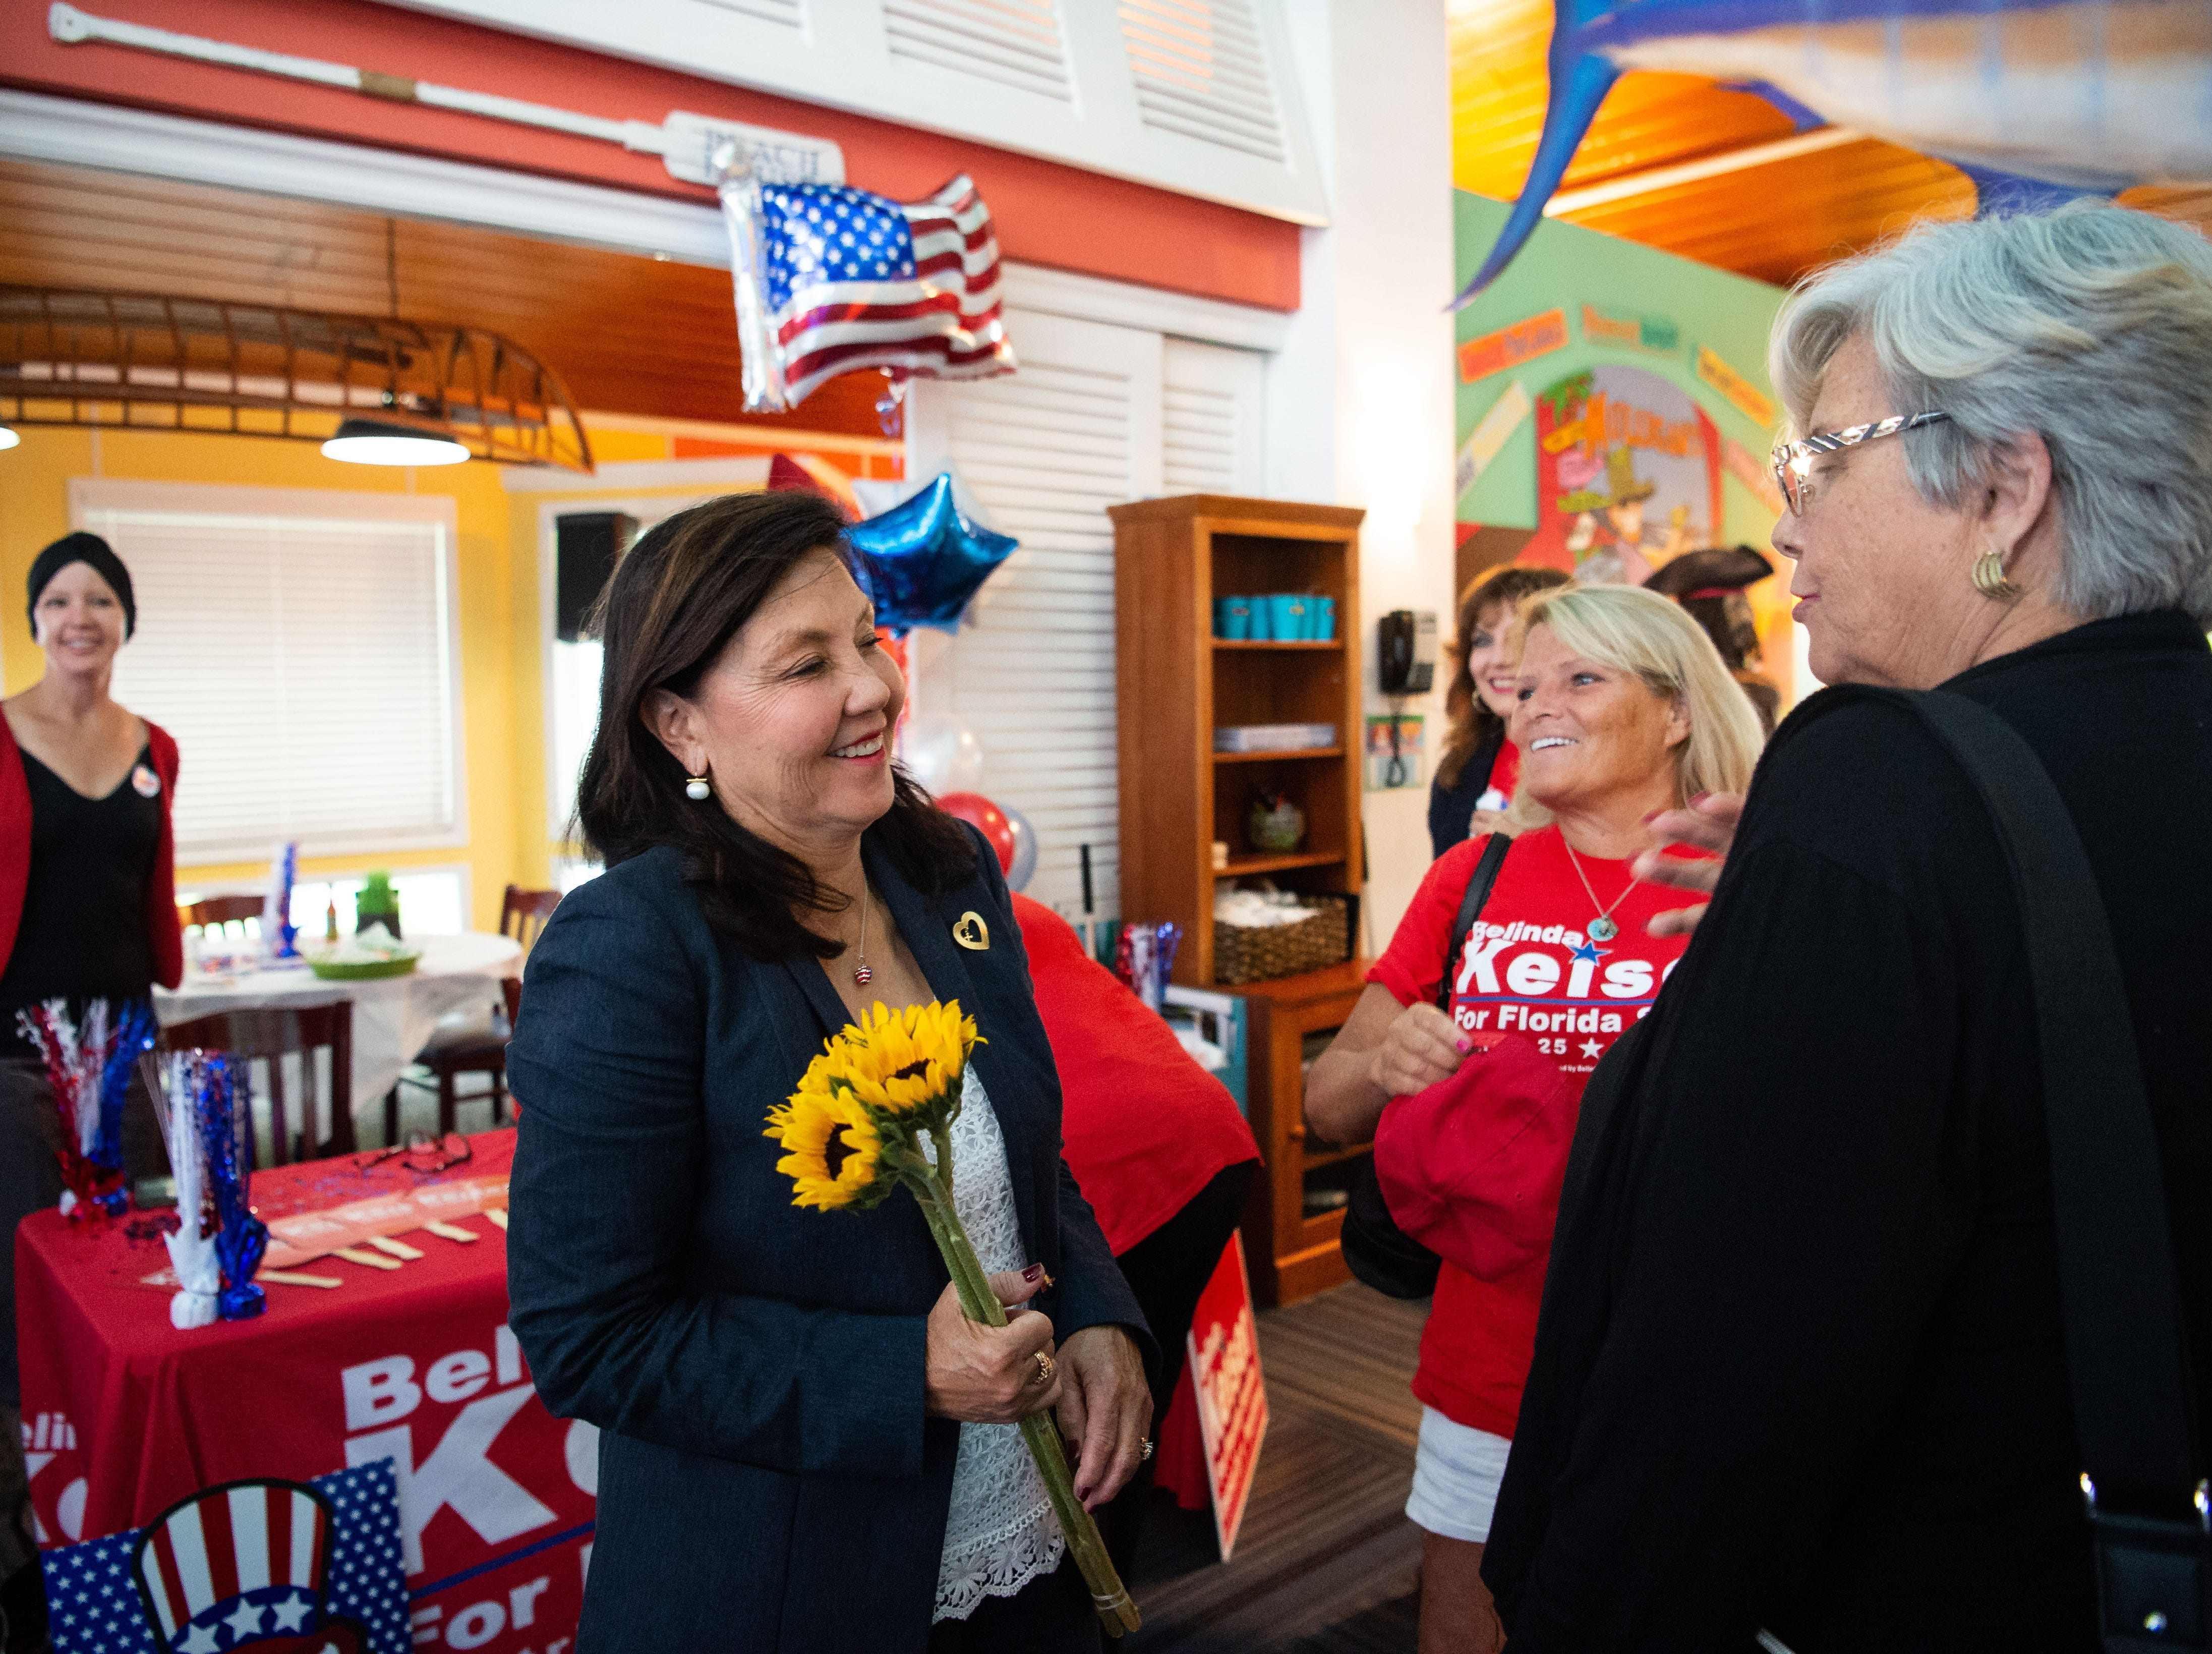 Keiser University administrator Belinda Keiser (left) speaks with campaign volunteer Ellen Williams (center), of Apollo Beach, and supporter Pegg Nott, of Palm City, at her primary election party Tuesday, Aug. 28, 2018, at Mulligan's Beach House Bar & Grill in downtown Stuart. Keiser lost her bid to State Rep. Gayle Harrell for the Senate Dist. 25 seat being vacated by Sen. Joe Negron.